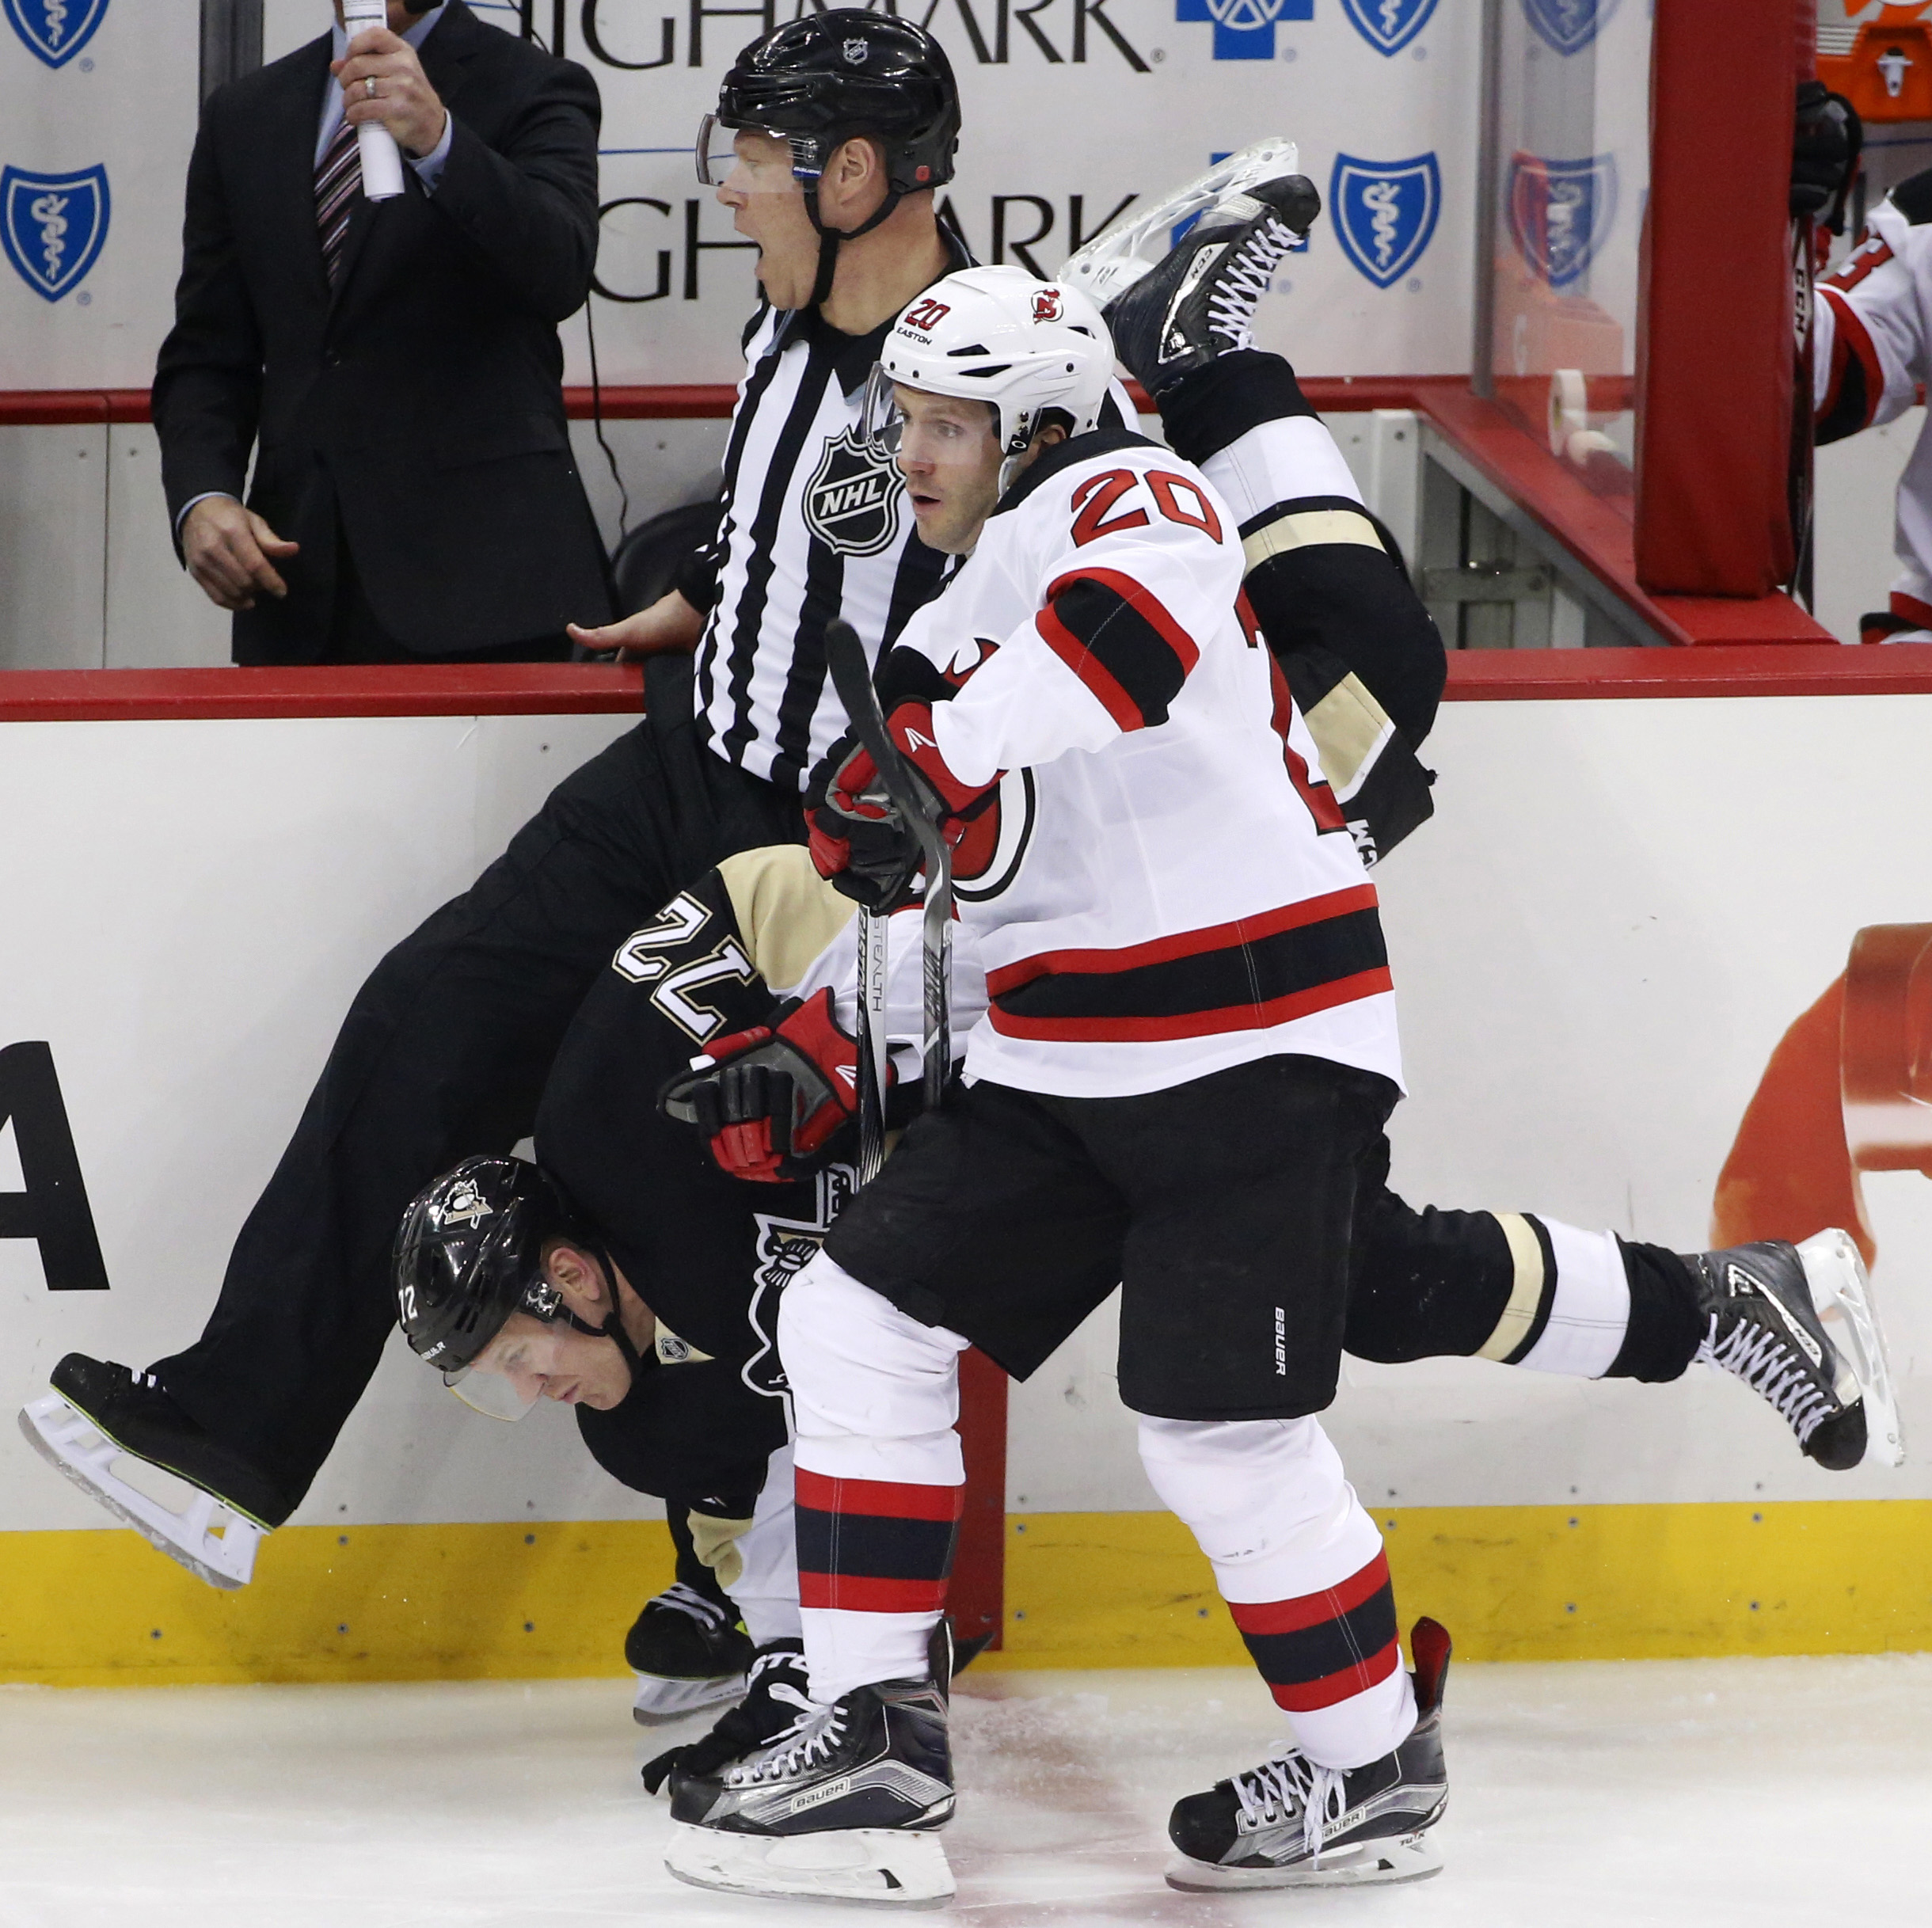 New Jersey Devils' Lee Stempniak (20) and Pittsburgh Penguins' Patric Hornqvist (72) collide with linesman Scott Driscoll during the first period of an NHL hockey game in Pittsburgh, Tuesday, Jan. 26, 2016. (AP Photo/Gene J. Puskar)